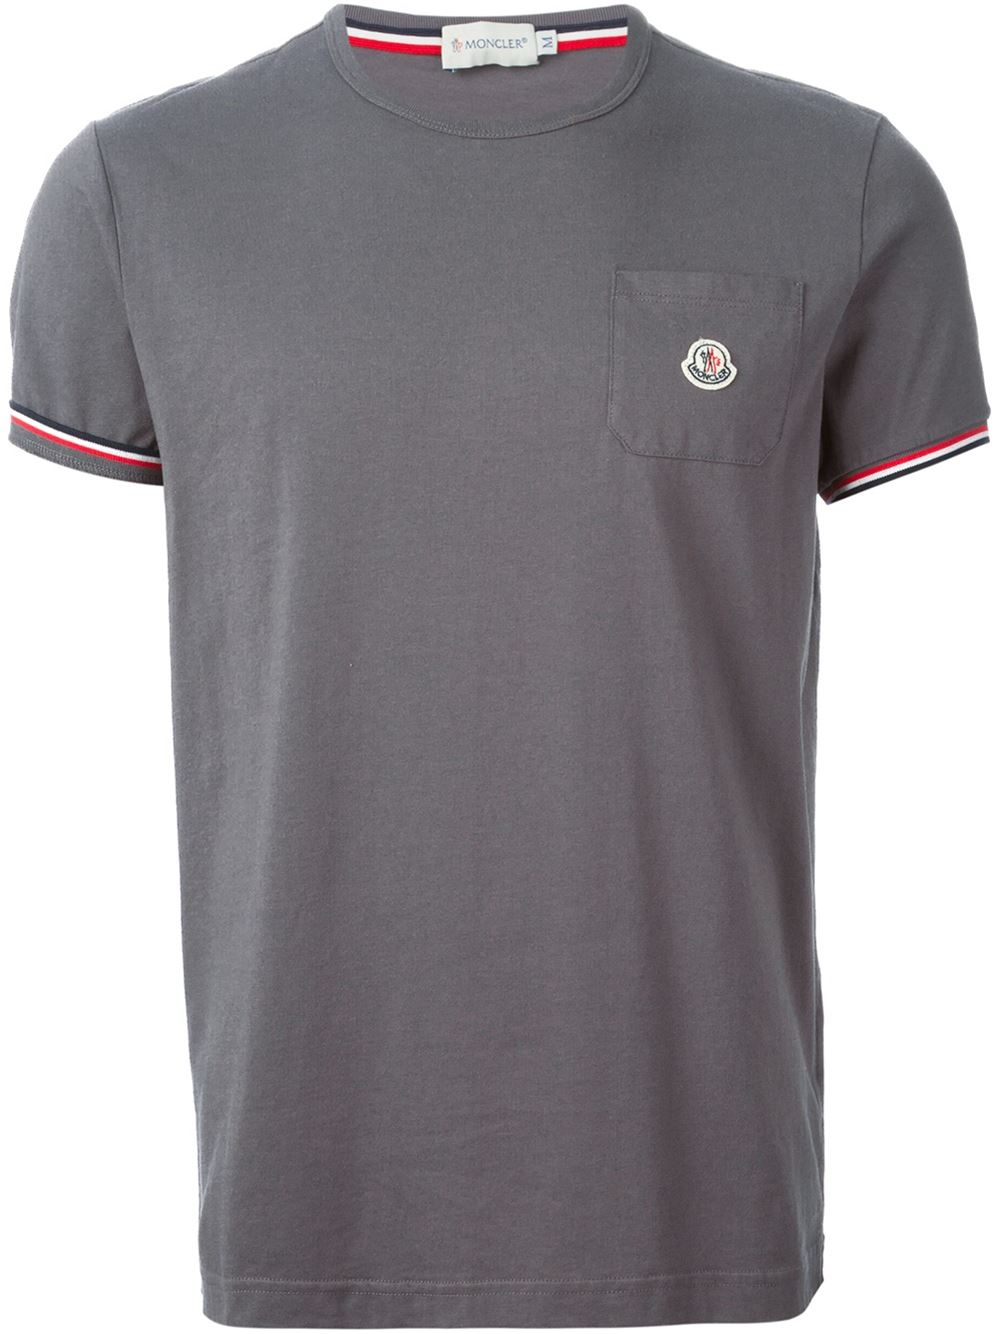 moncler mens tee shirts west of rayleigh. Black Bedroom Furniture Sets. Home Design Ideas